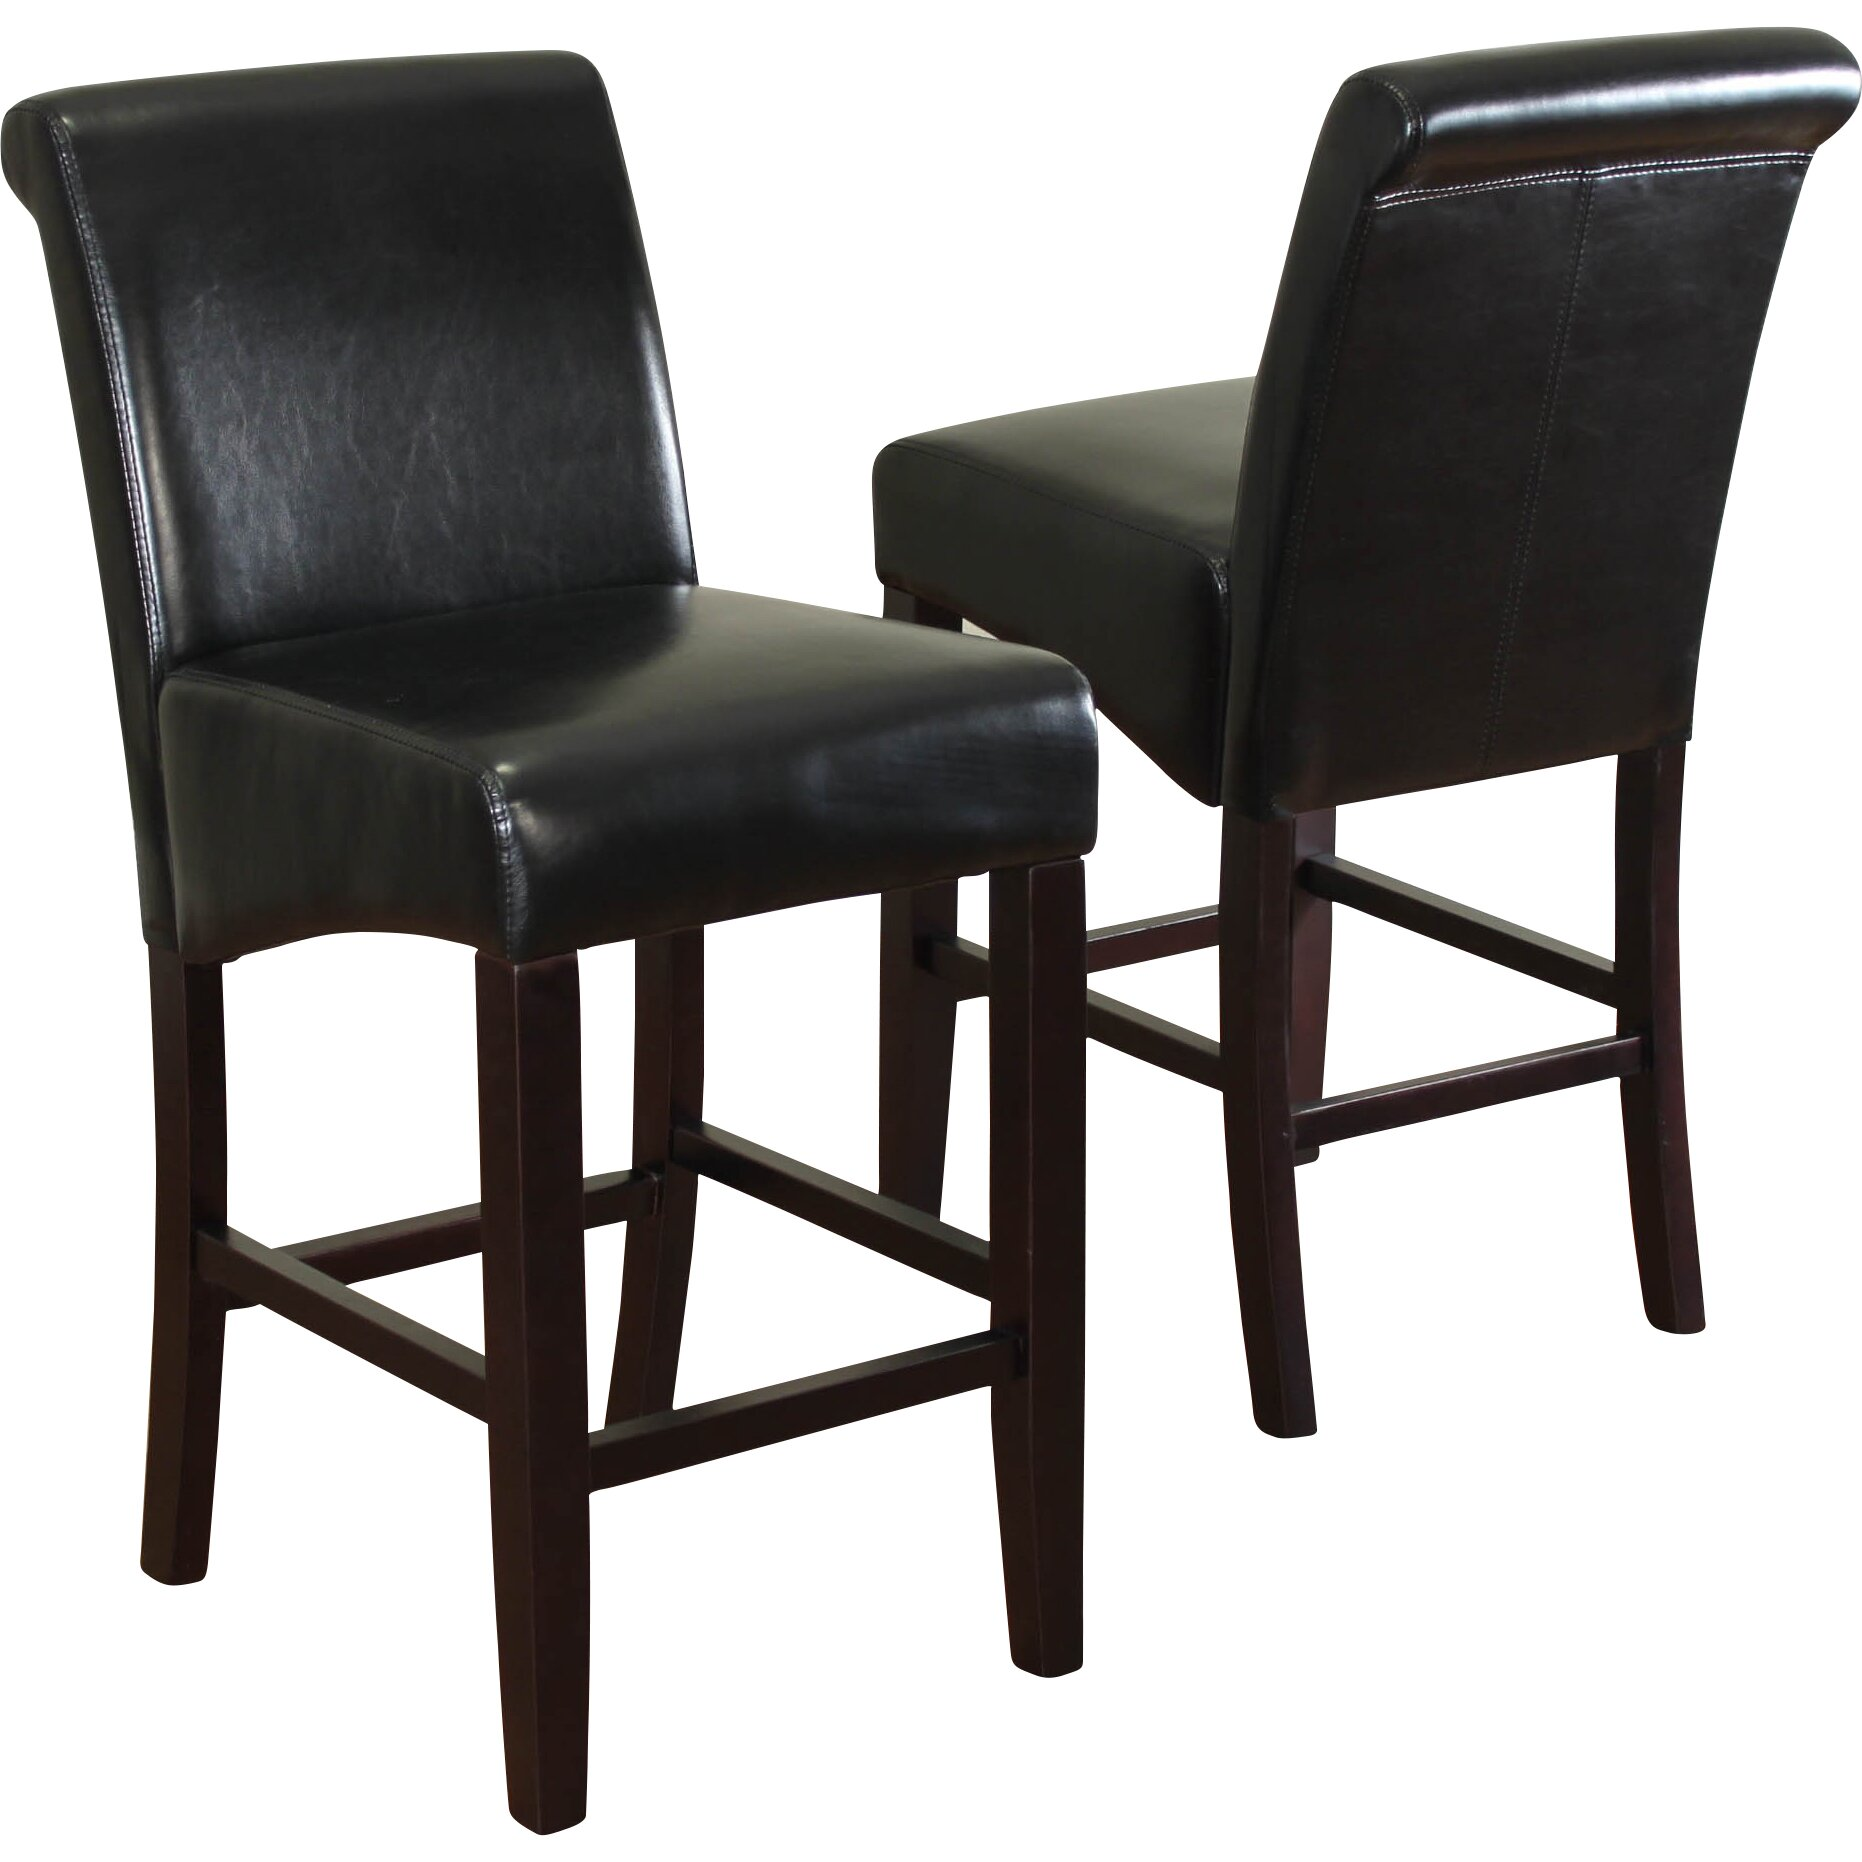 Andover Mills Elaine 26quot Bar Stool with Cushion amp Reviews  : Elaine 26 Bar Stool with Cushion ANDO2034 from www.wayfair.com size 1862 x 1862 jpeg 282kB